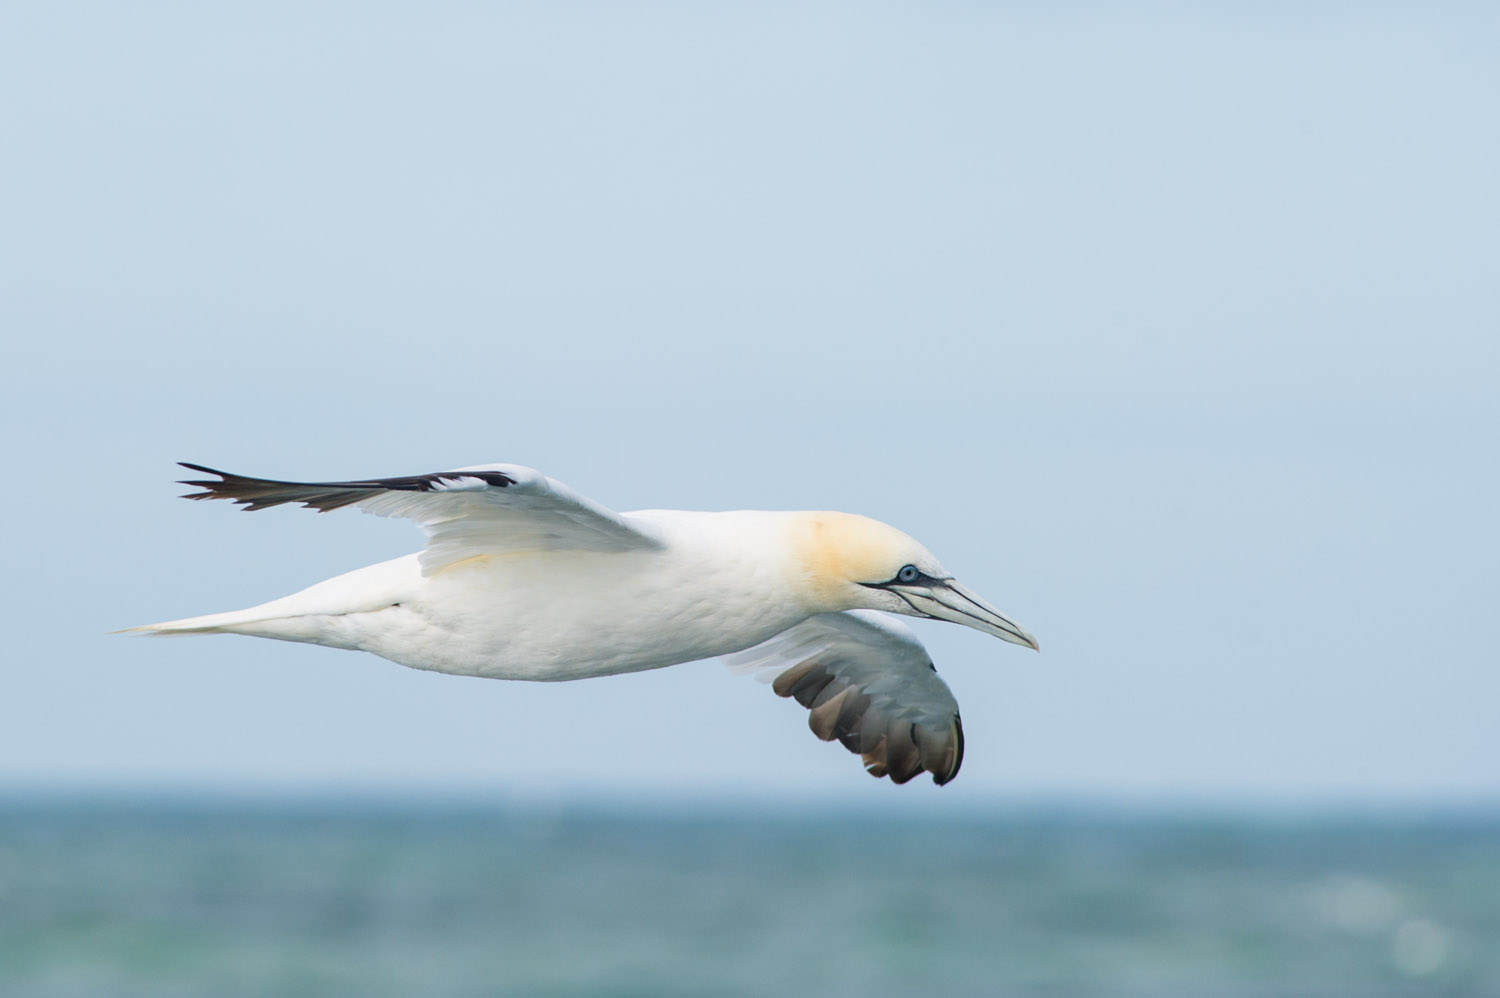 A Northern Gannet cruises by at almost eye level as we head out to sea.